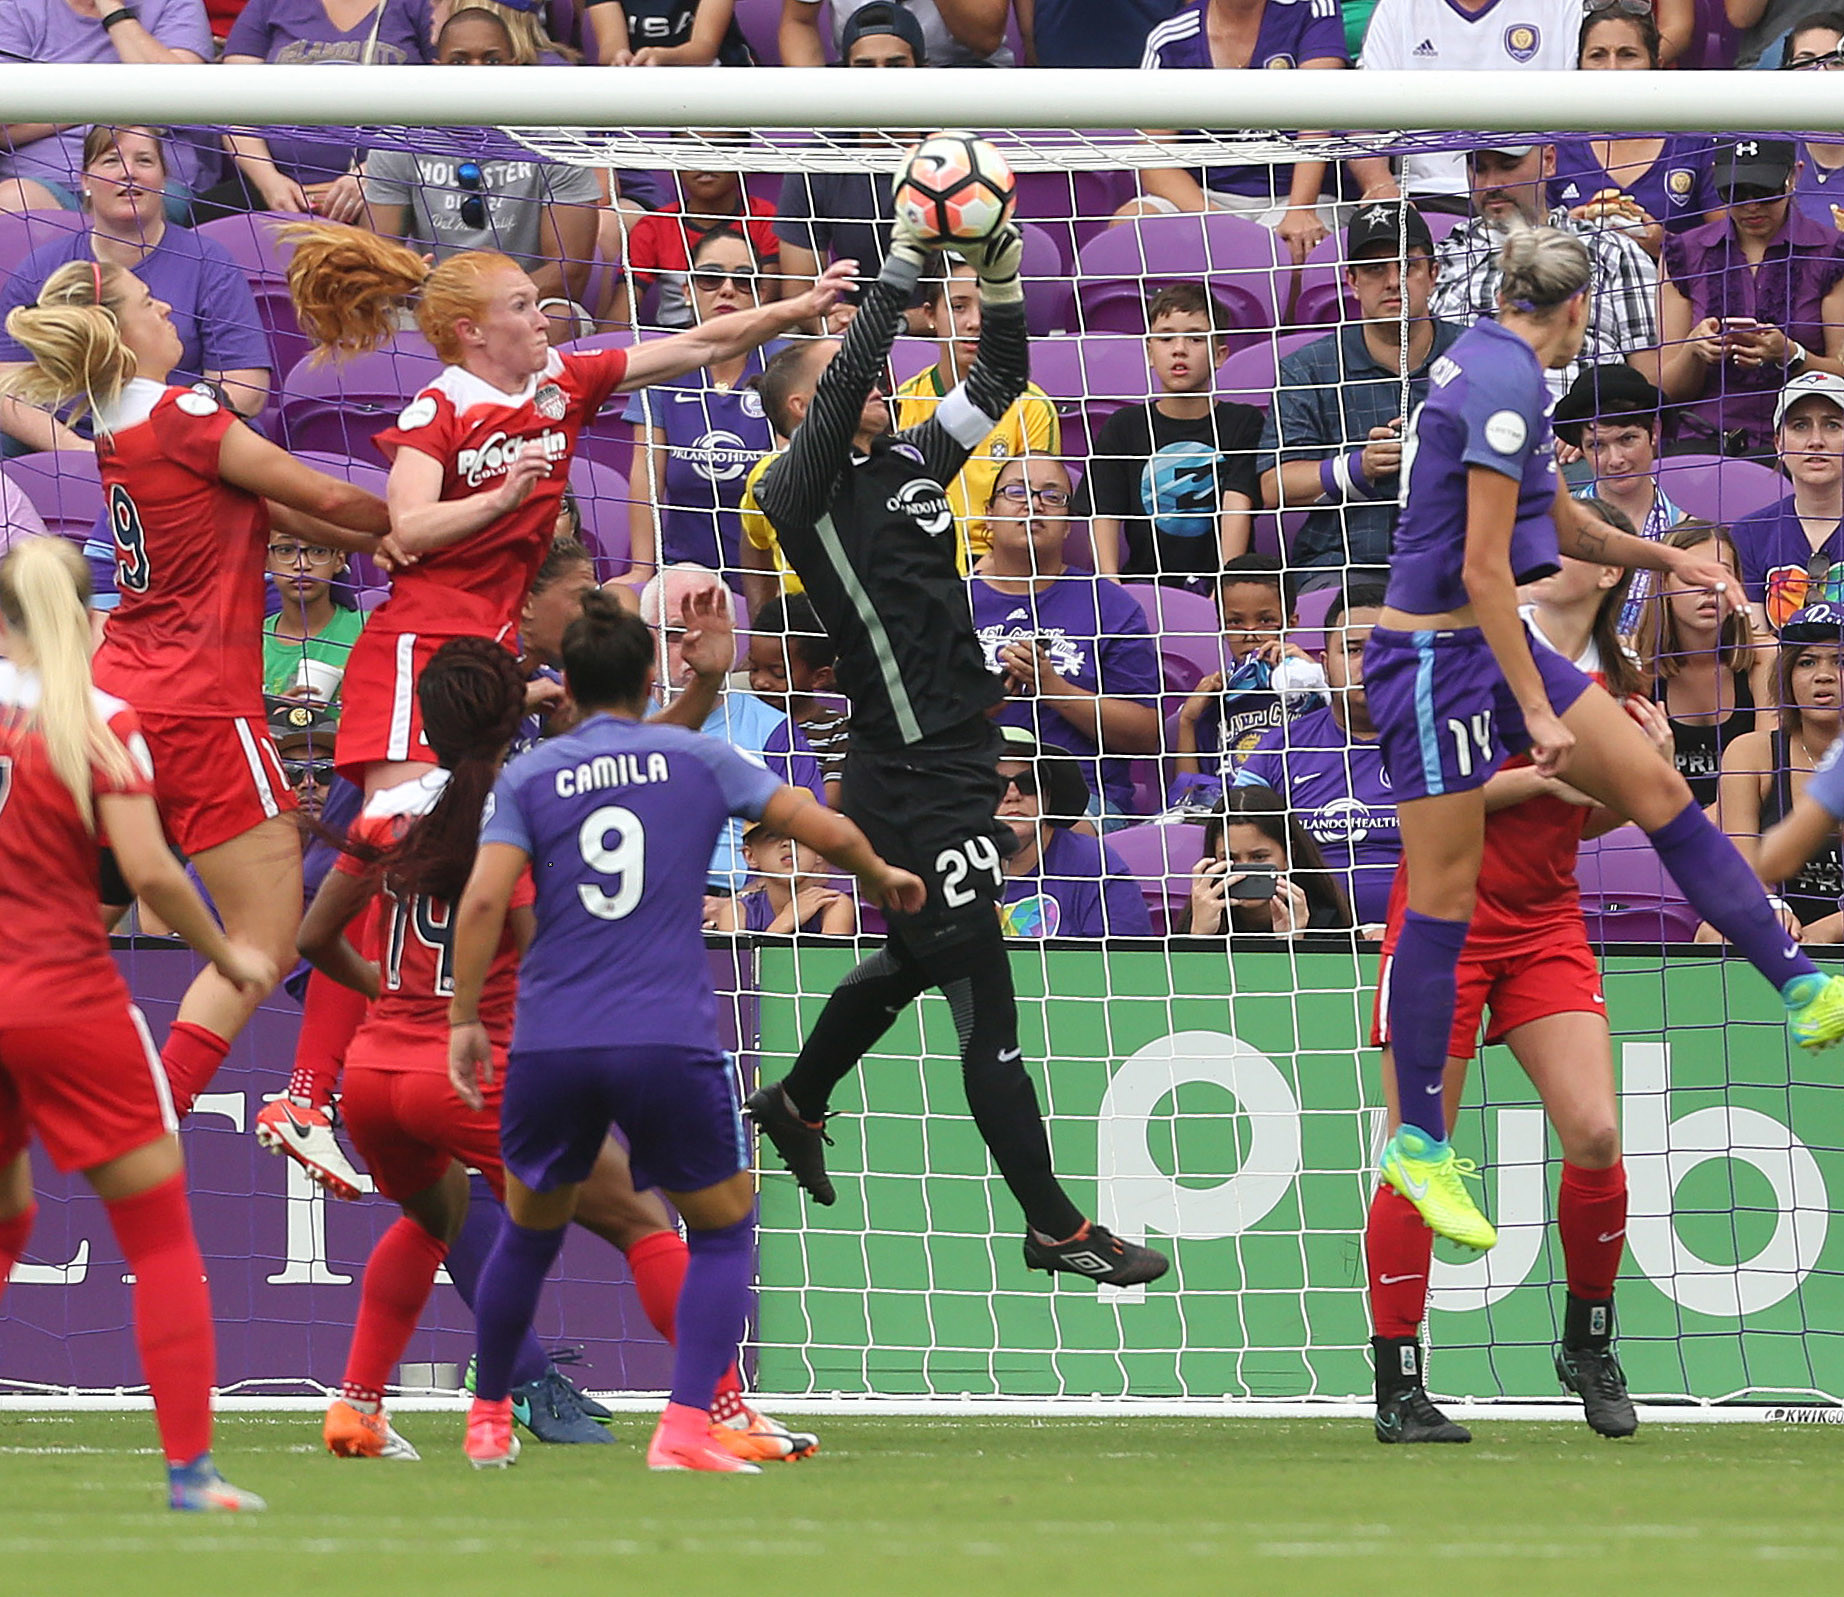 3a7e67ece Pride goalkeeper Ashlyn Harris out eight weeks due to quad injury - Chicago  Tribune